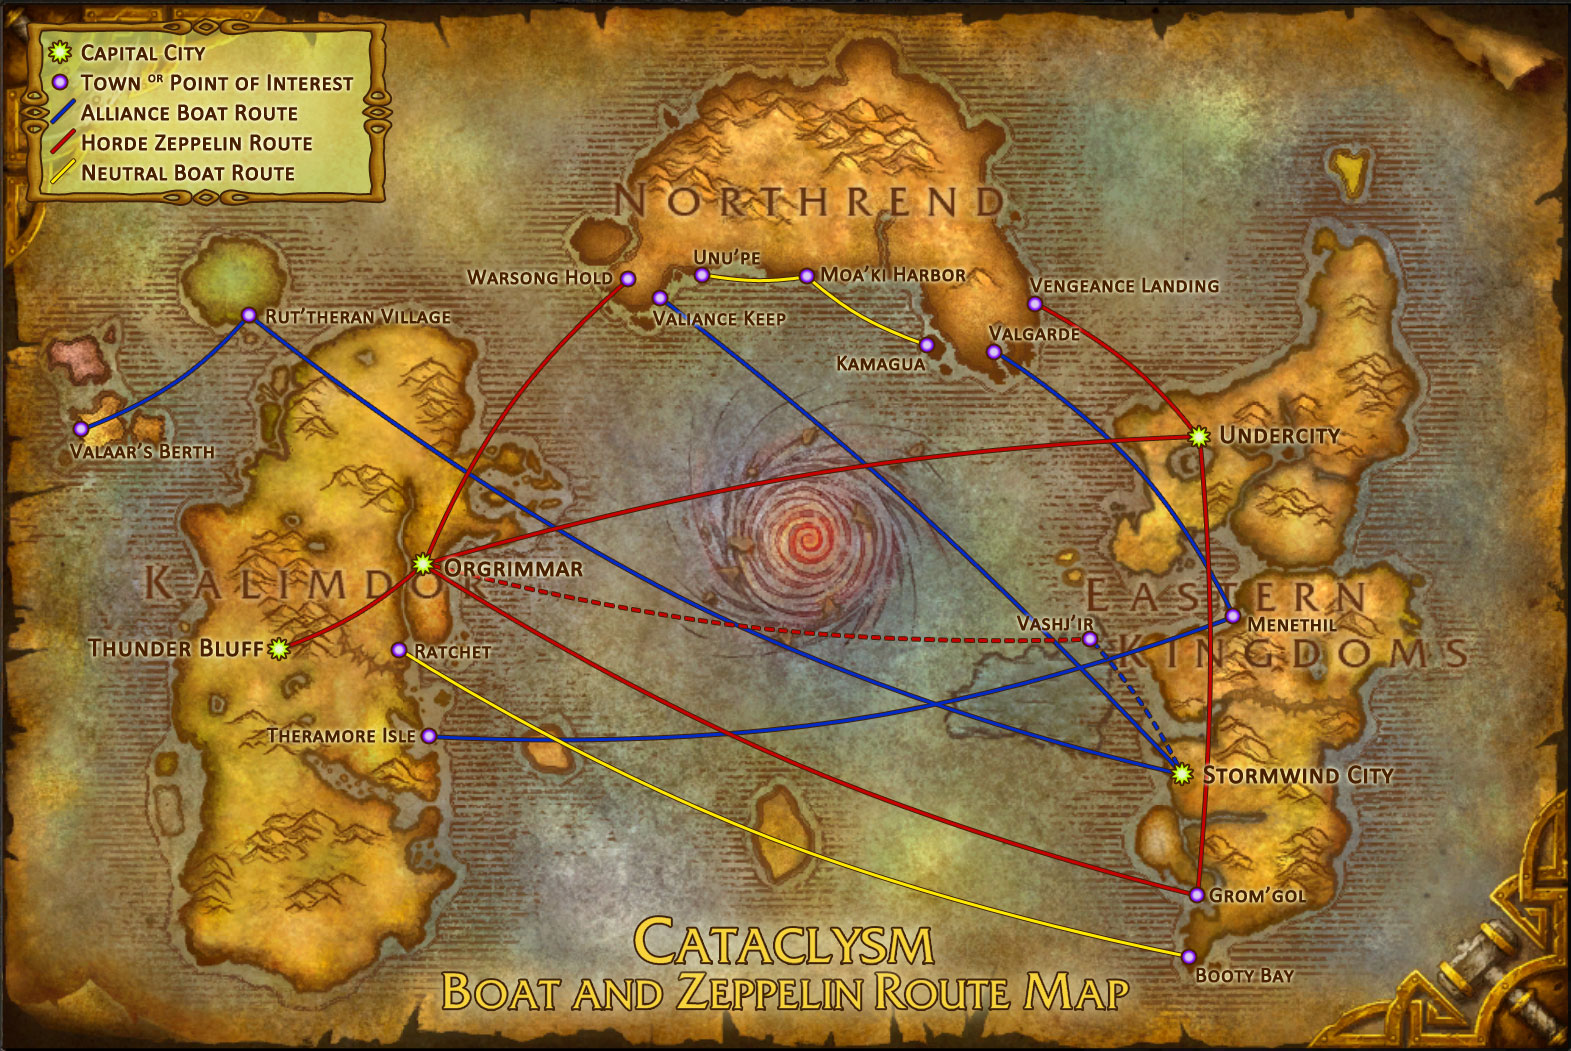 World of Warcraft Intrinsic Motivation and Travel